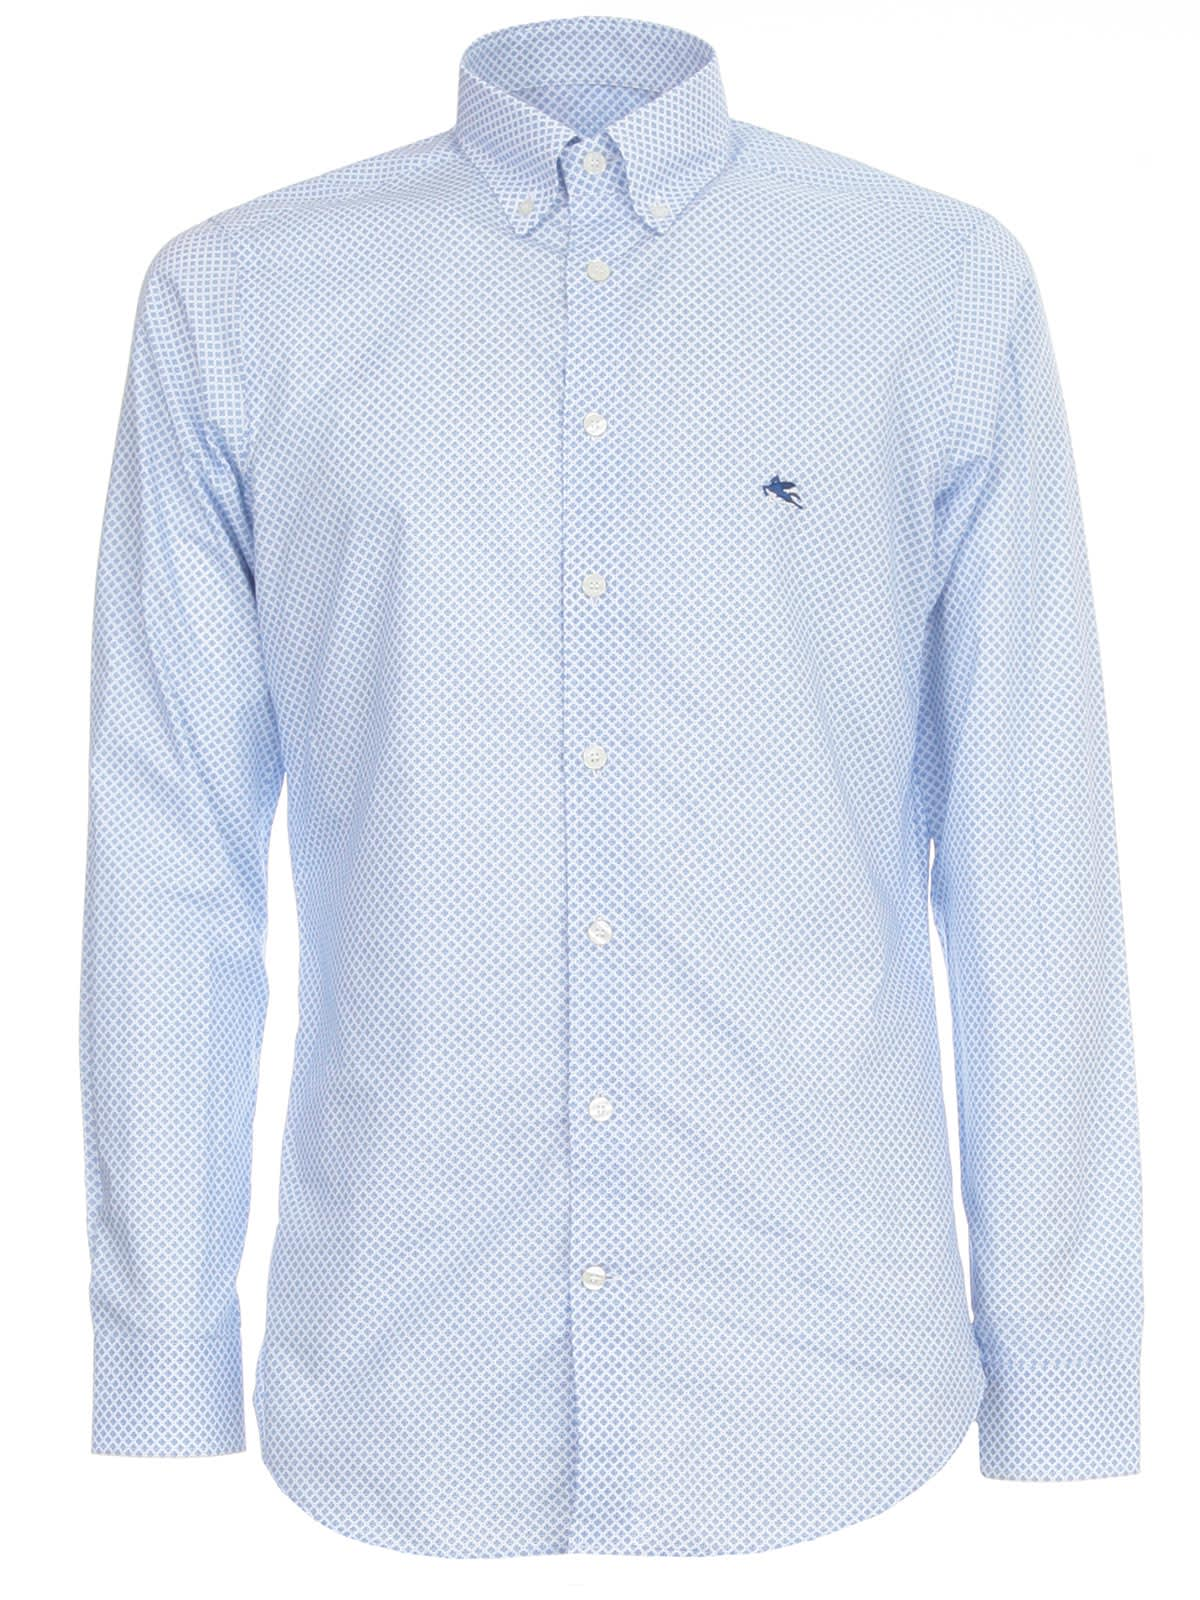 Etro Slim Shirt Botton Down W/logo